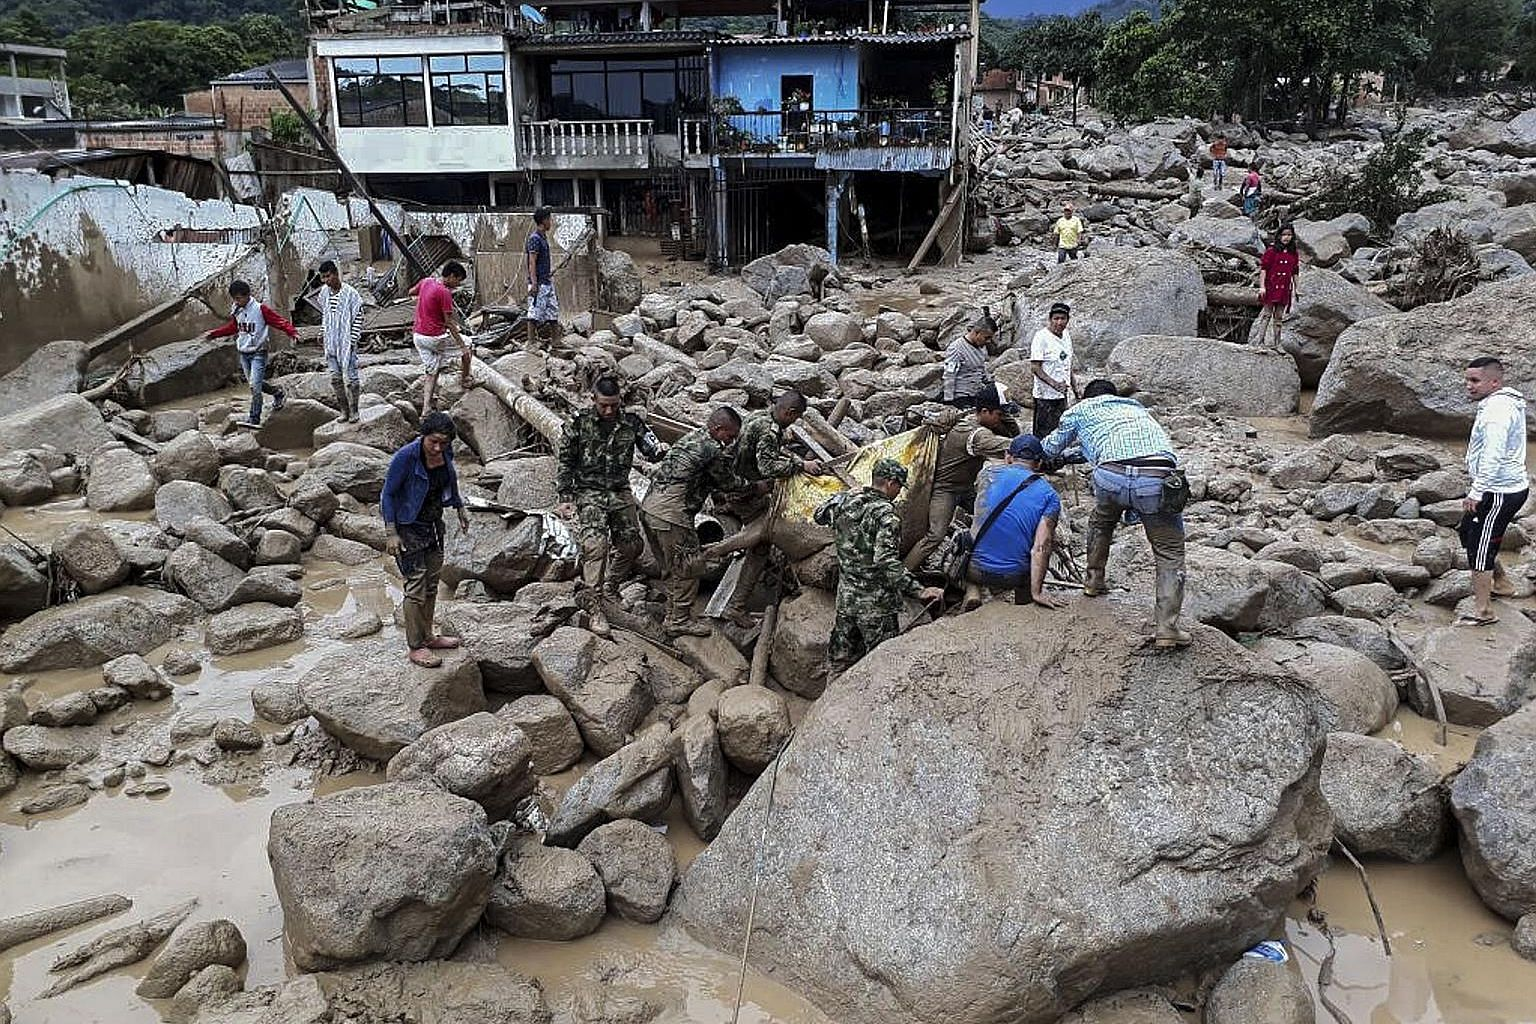 Cars and houses were damaged after a landslide in Colombia's south-western province of Putumayo. Rescue efforts in Mocoa are still ongoing (right) with an unknown number of people missing after heavy rain overnight caused several rivers to overflow.